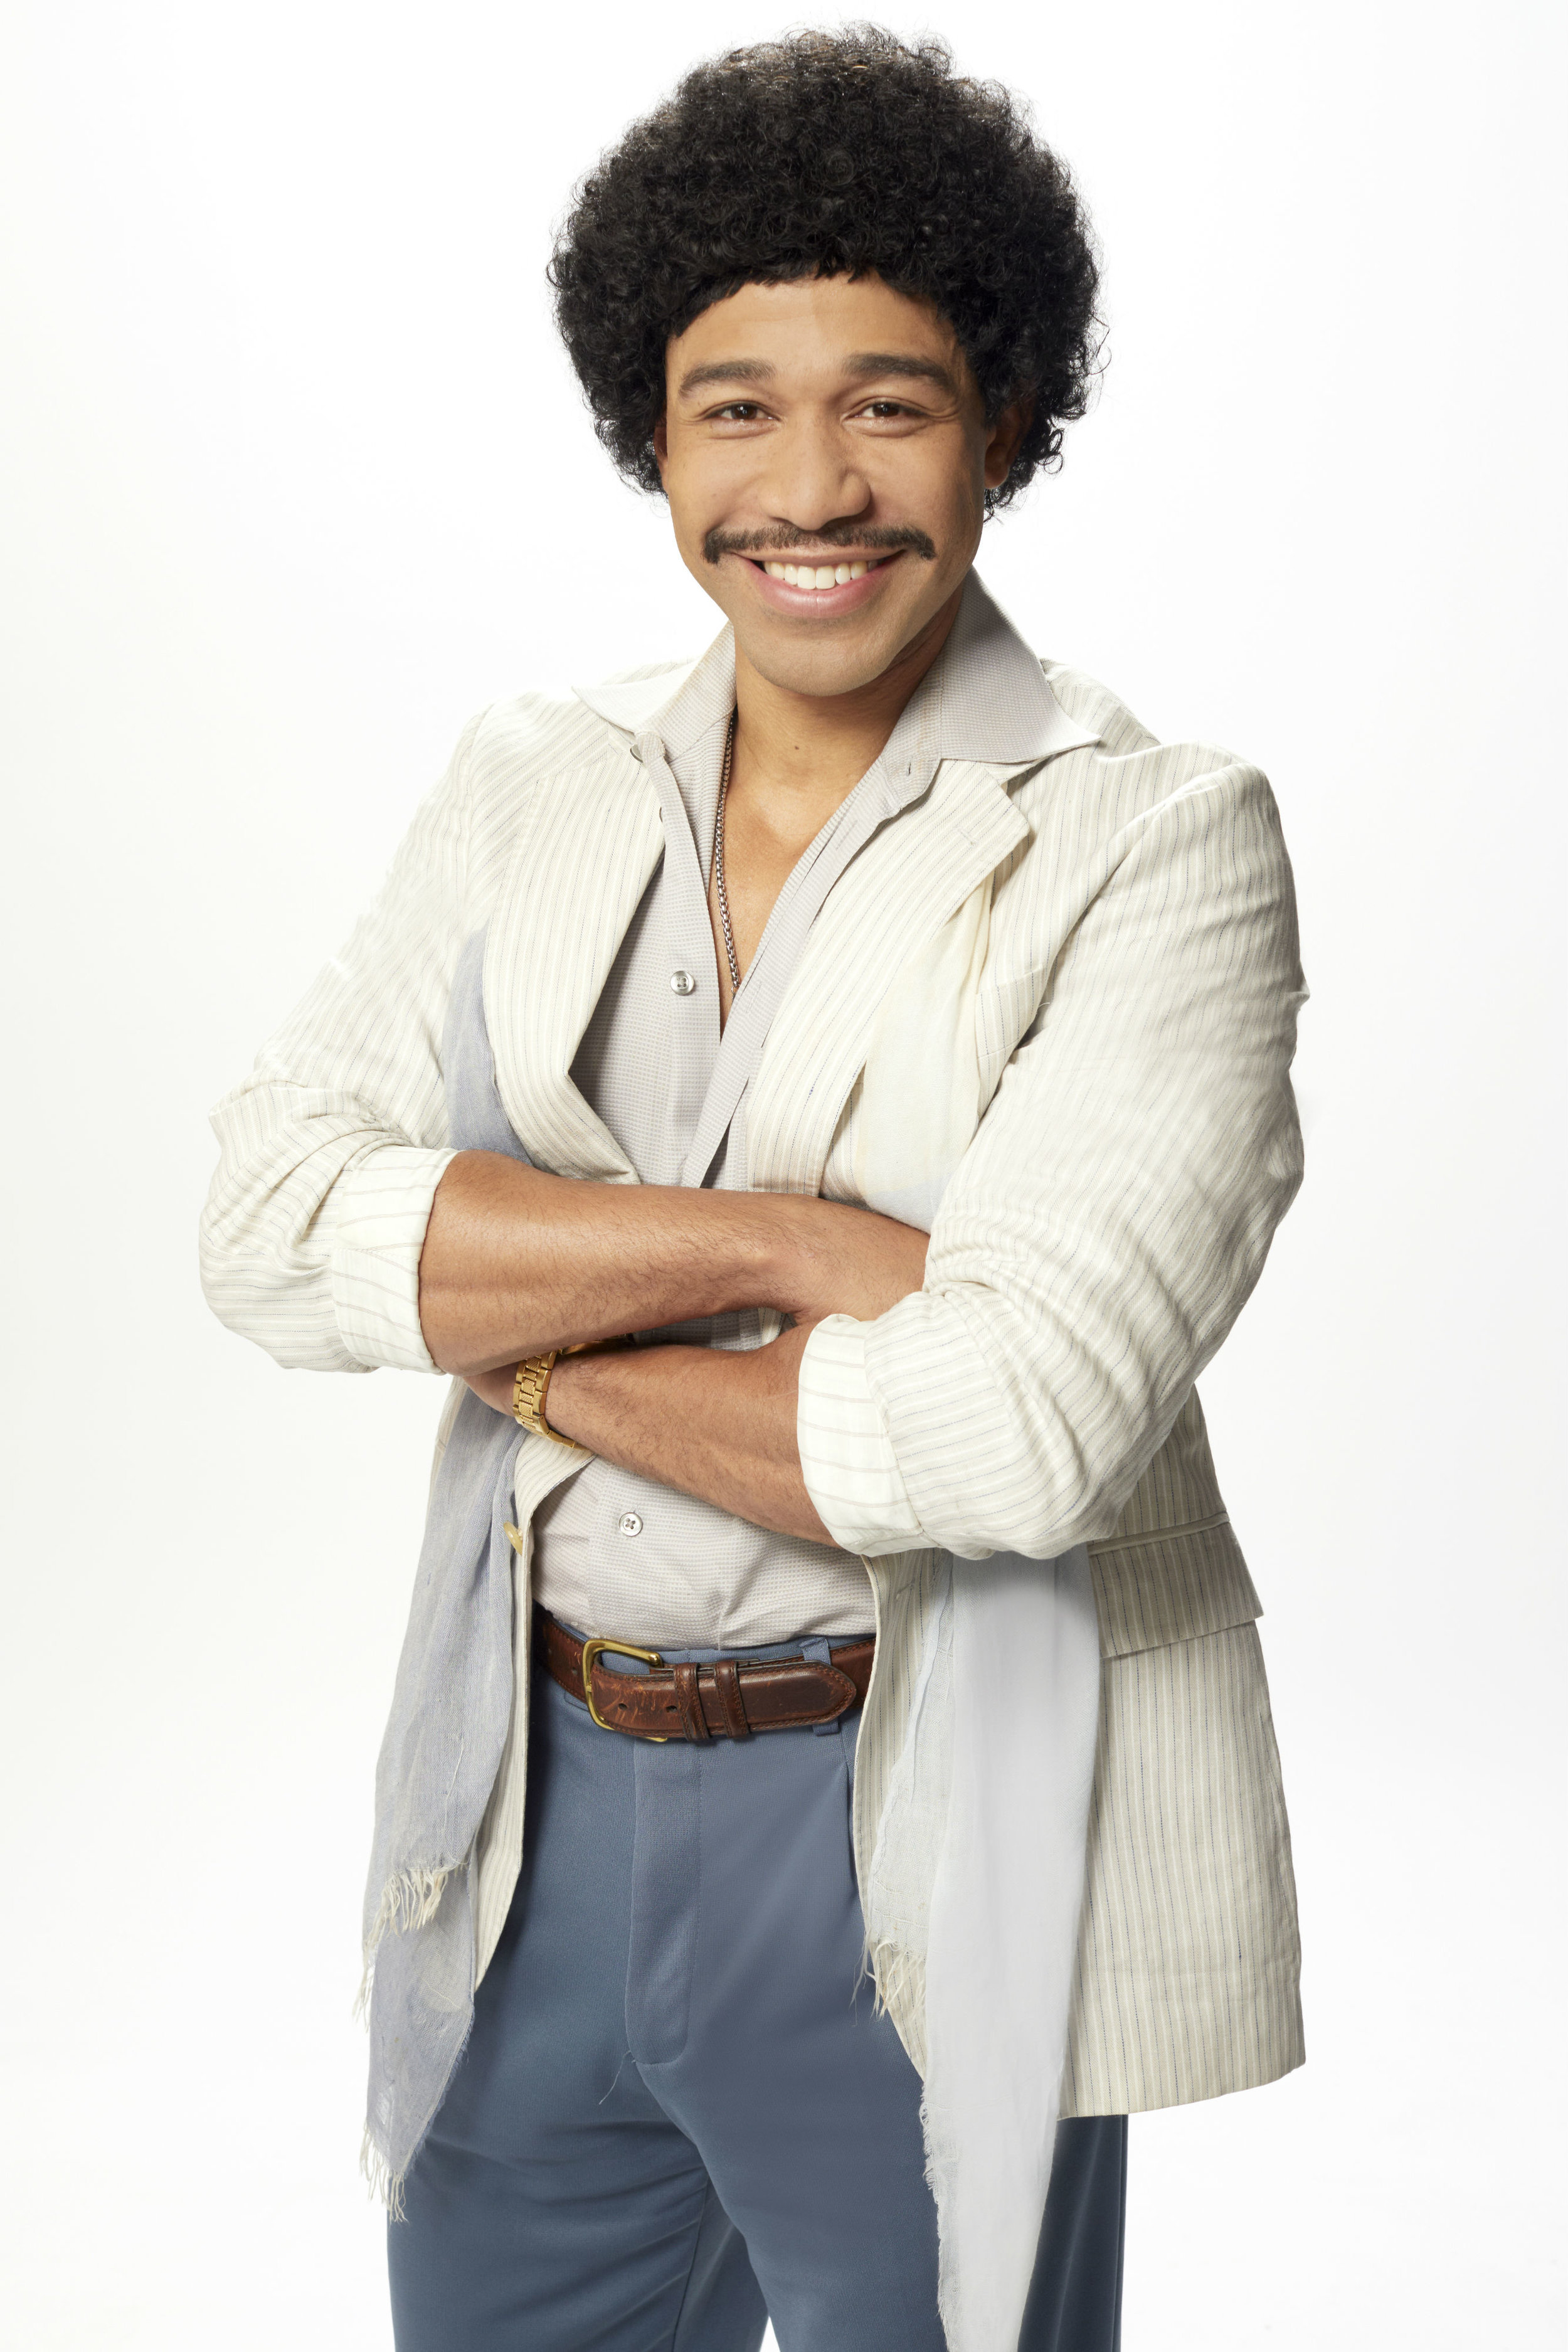 TOMMY_DEBARGE_Blue-Kimble.jpg